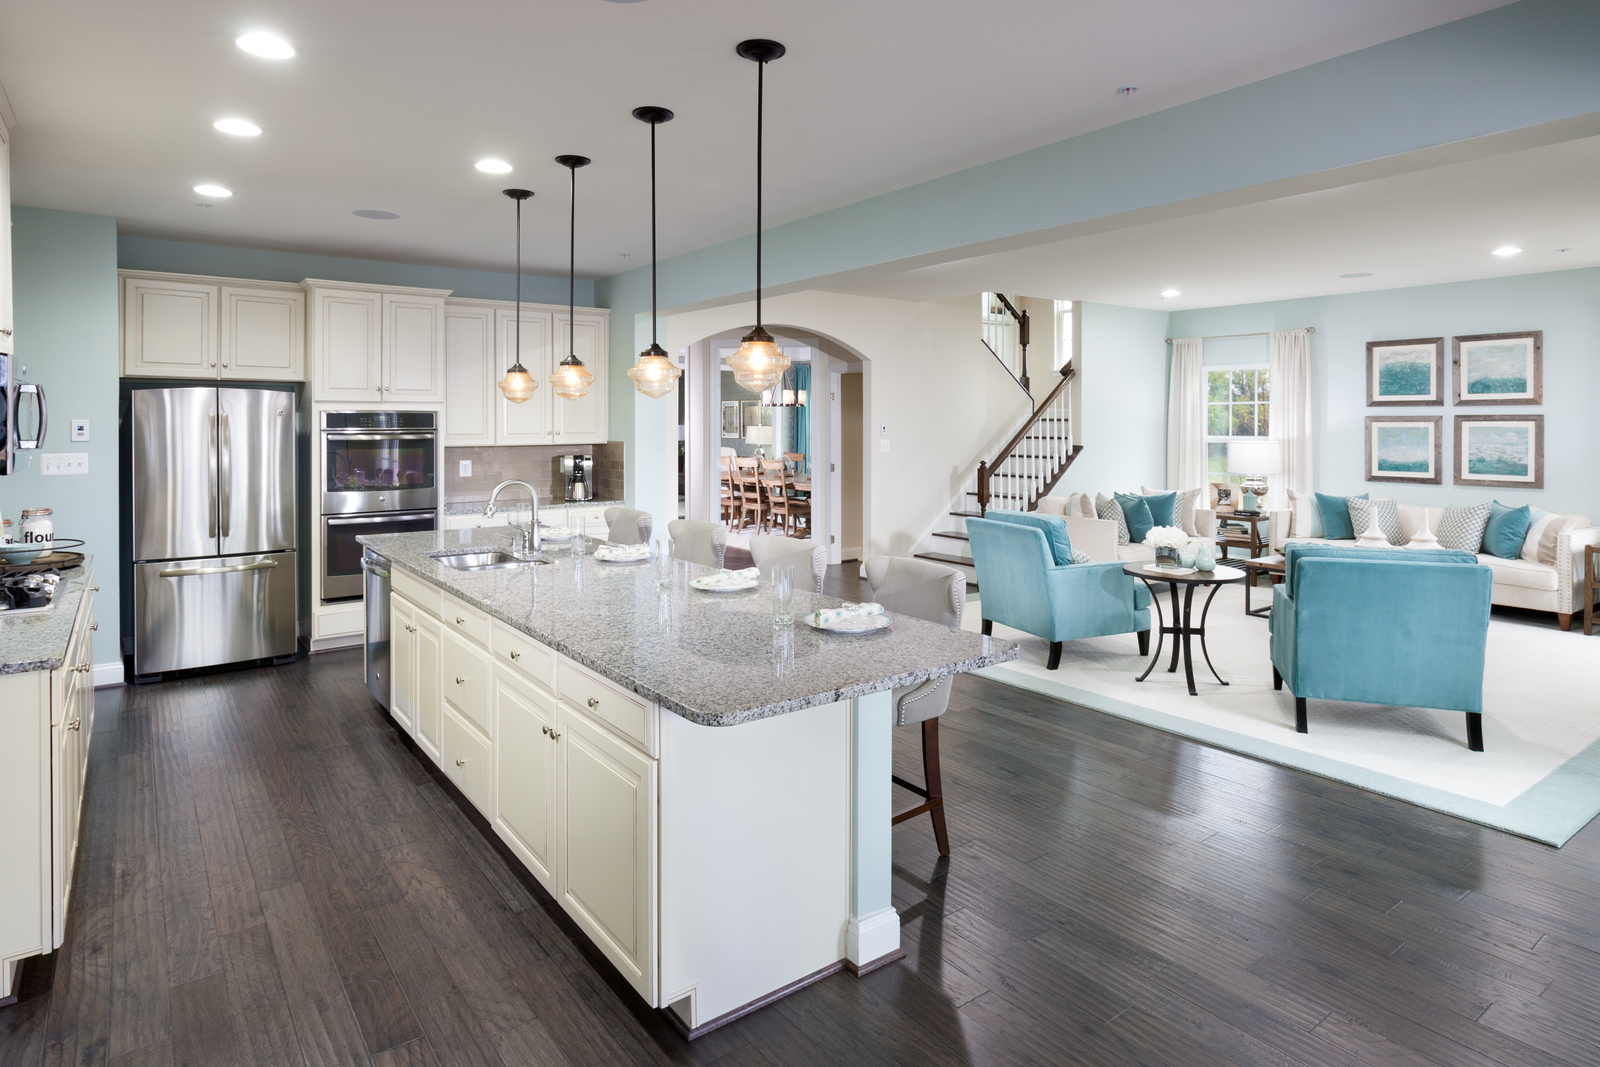 new homes for sale at hanover pointe in new hanover  pa within the boyertown school district